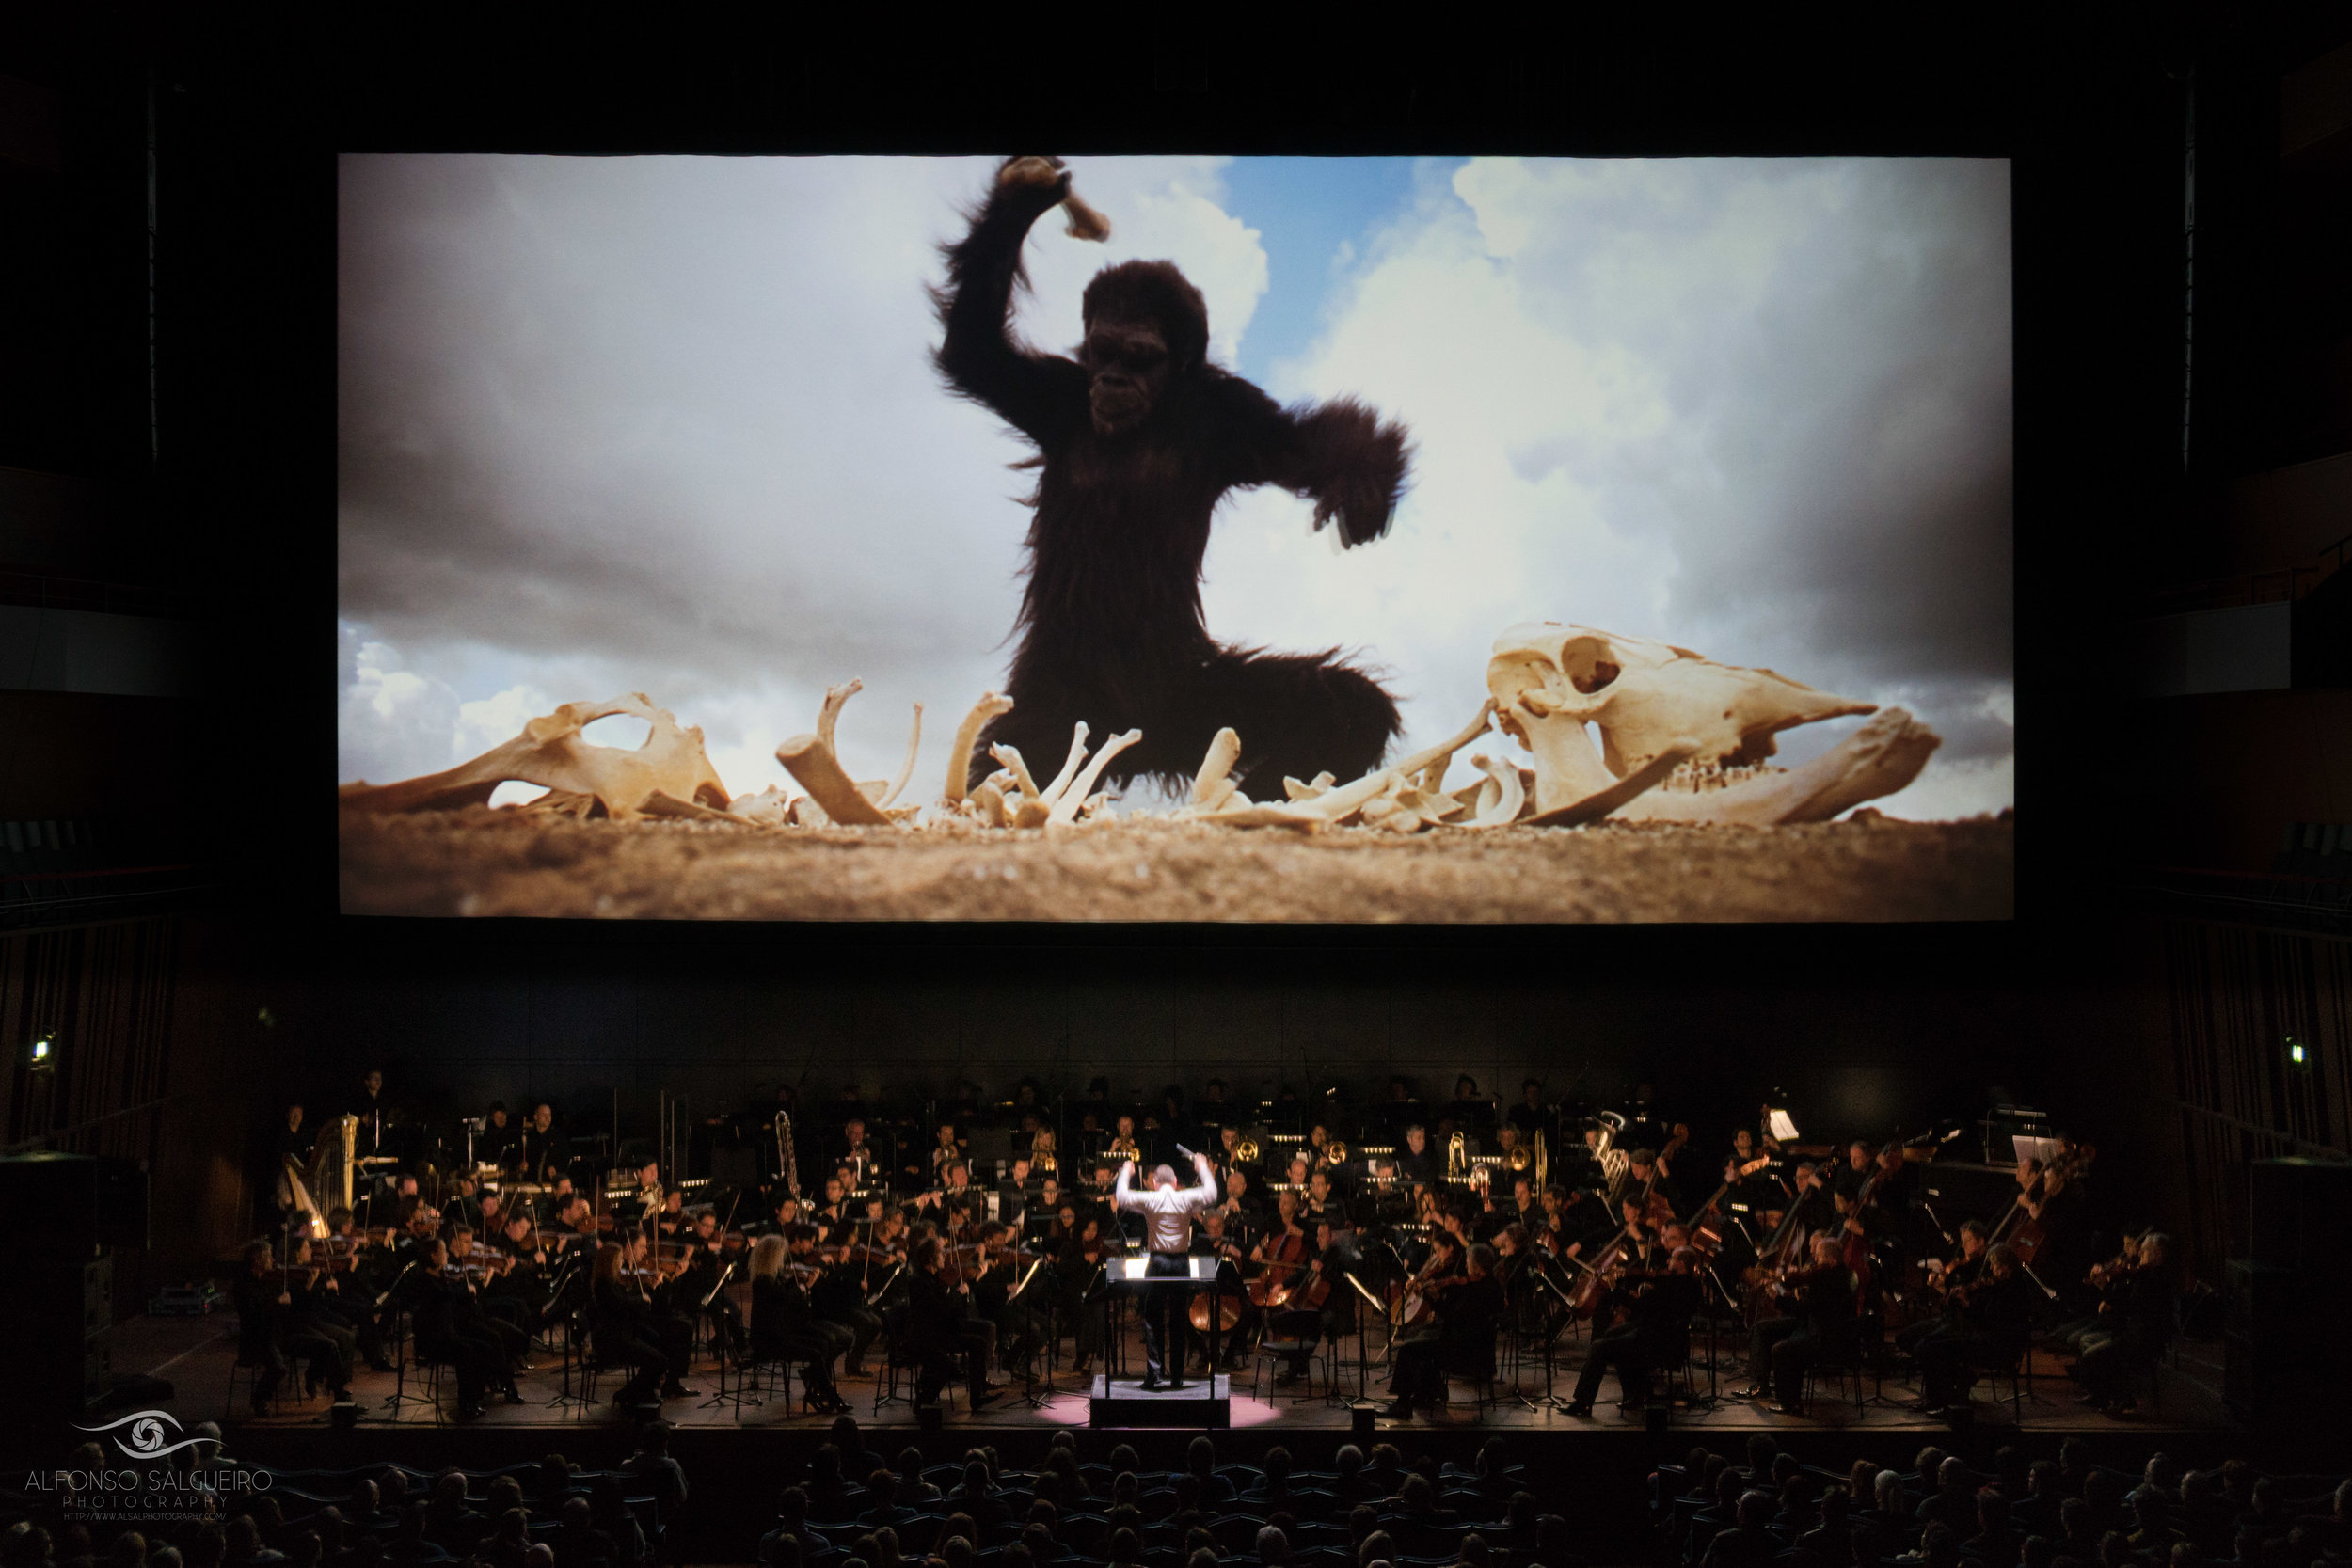 The OPL cinema concert, Kubrick: 2001: A Space Odyssey